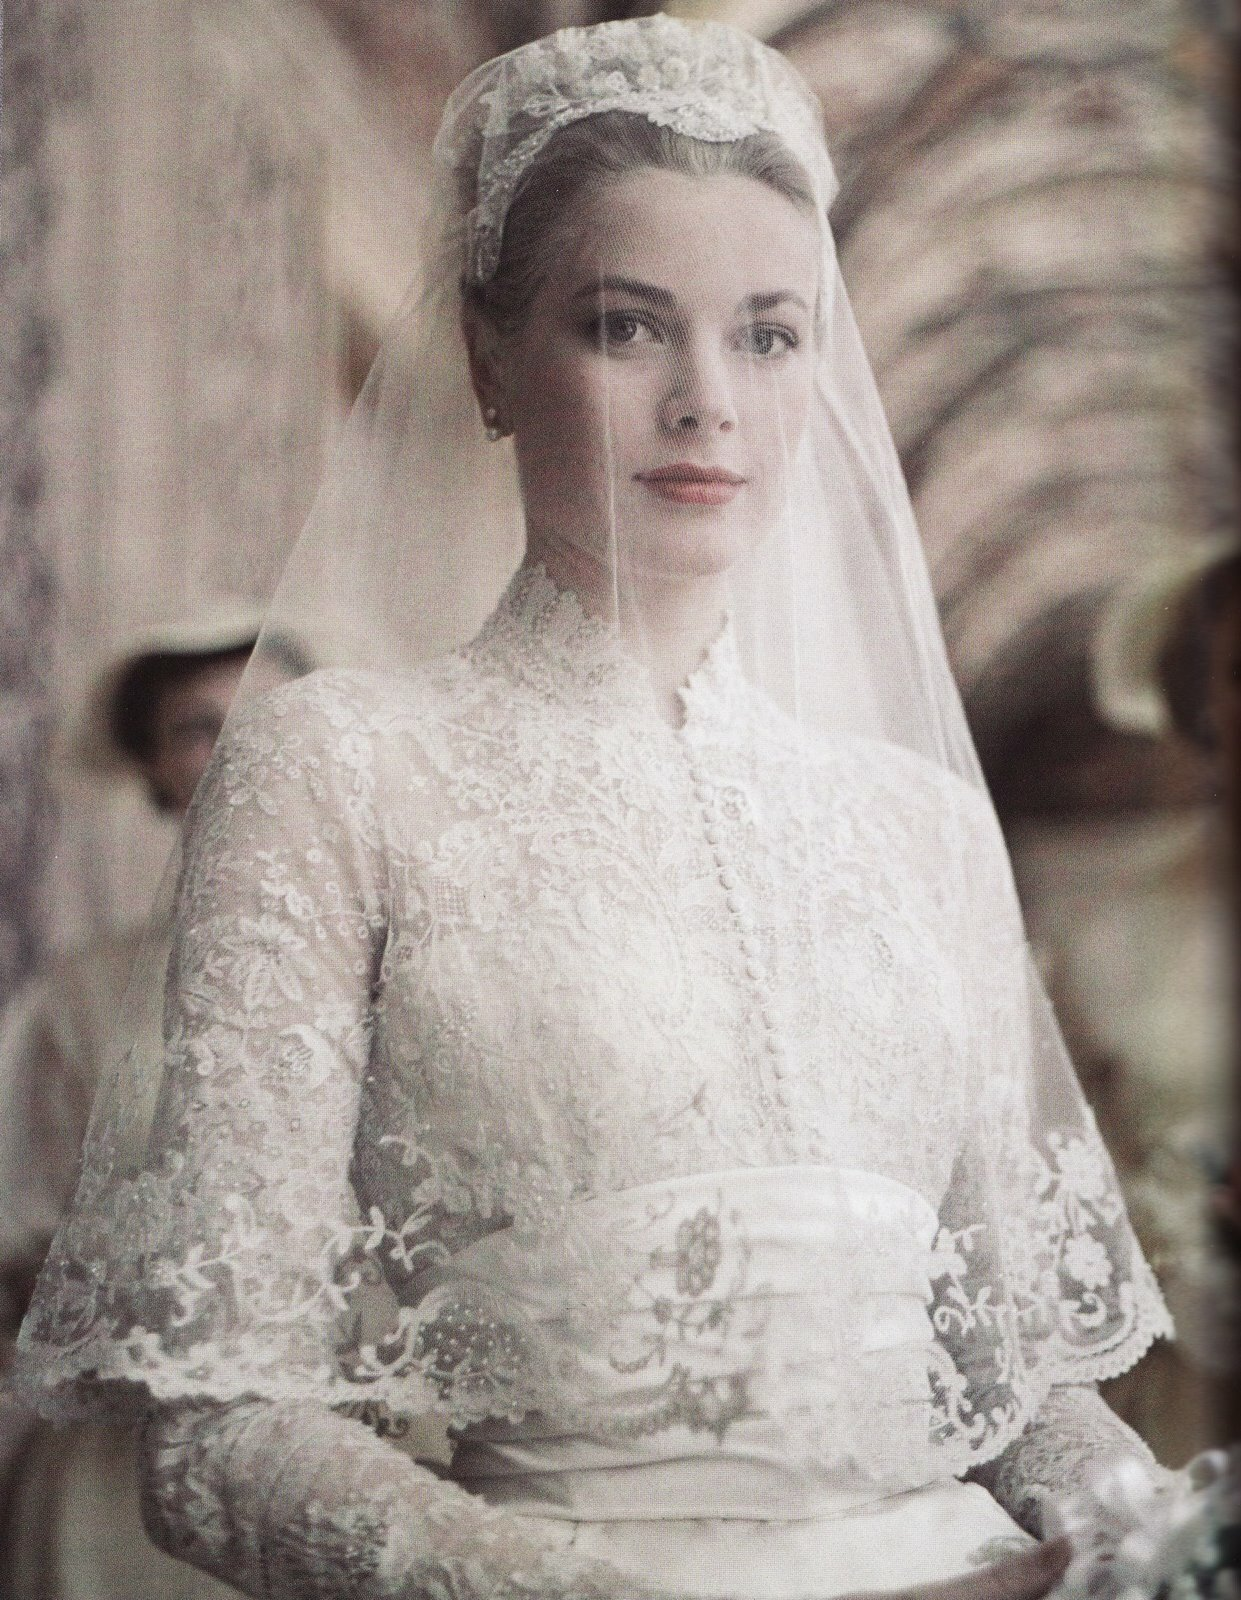 Vintage wedding dresses tampa: Pictures ideas, Guide to buying ...